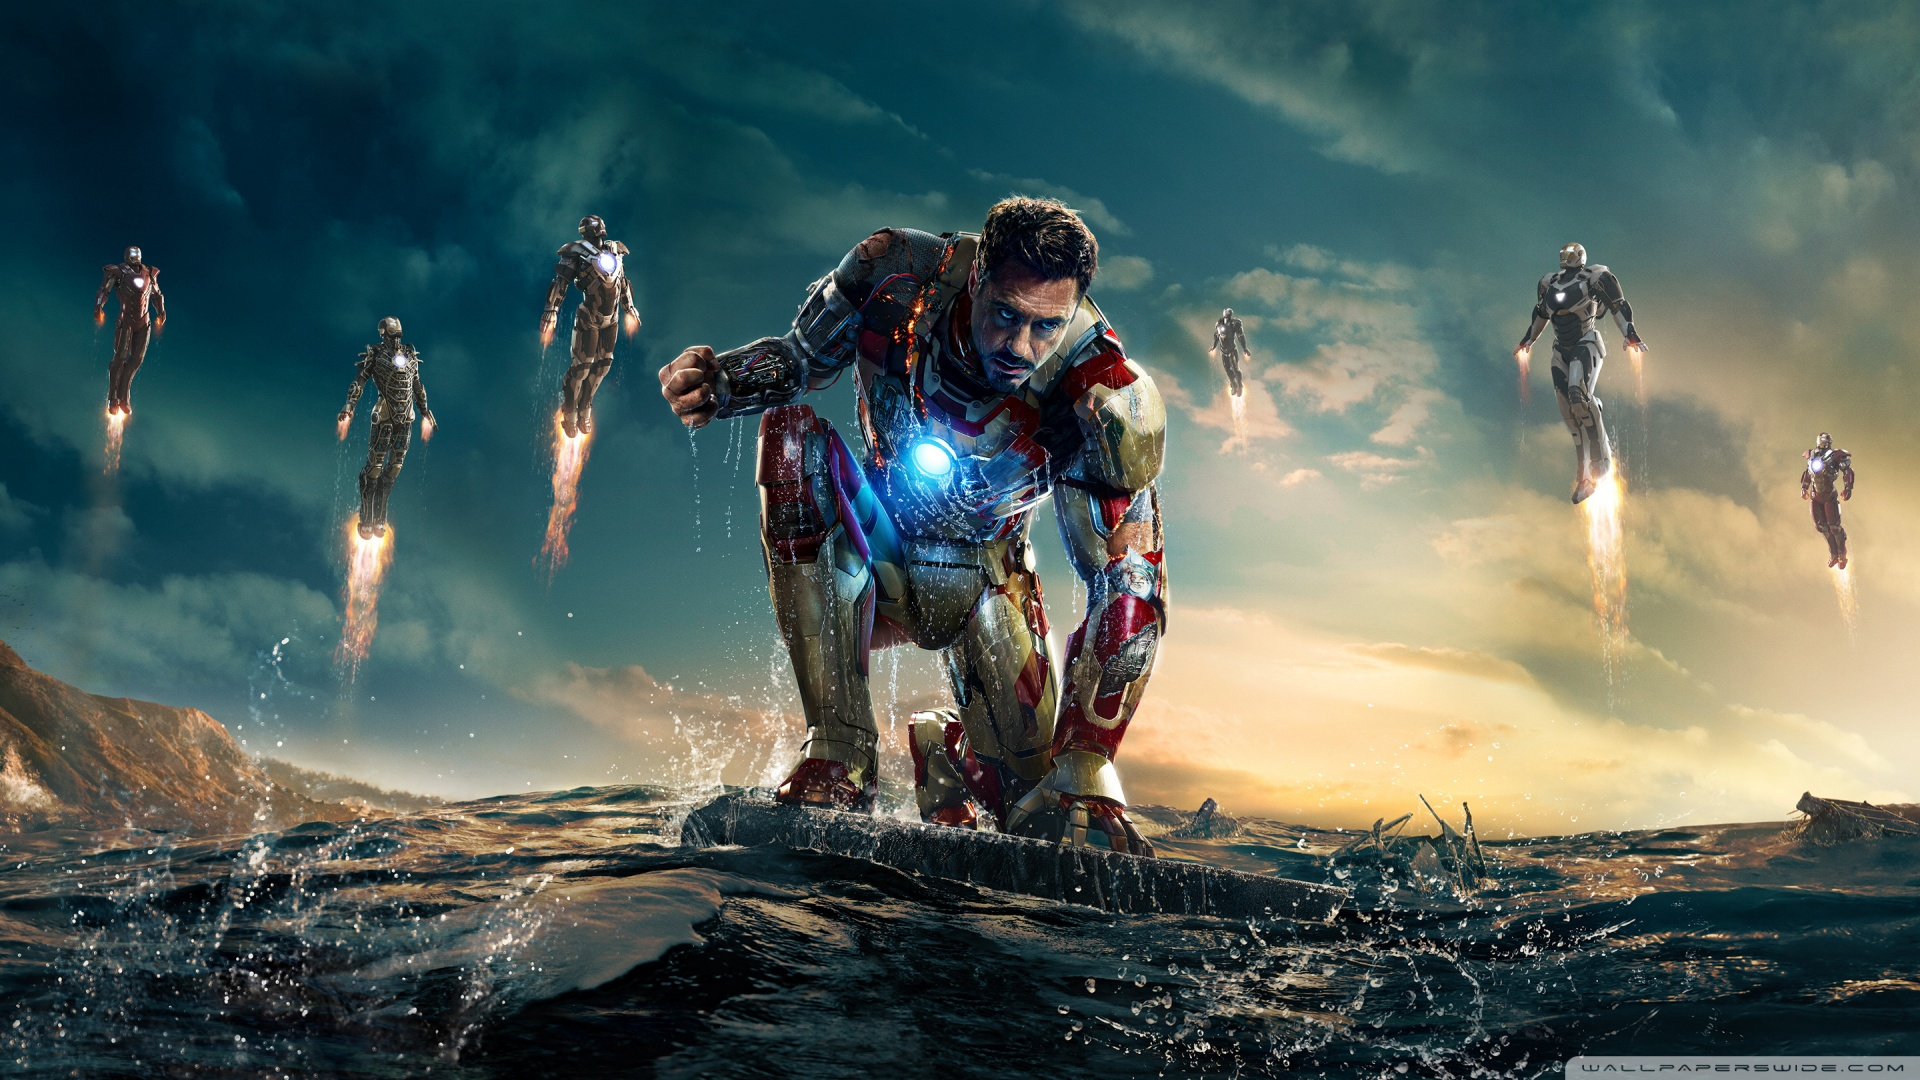 Iron Man 3 Wallpaper Hd 1920×1080 2